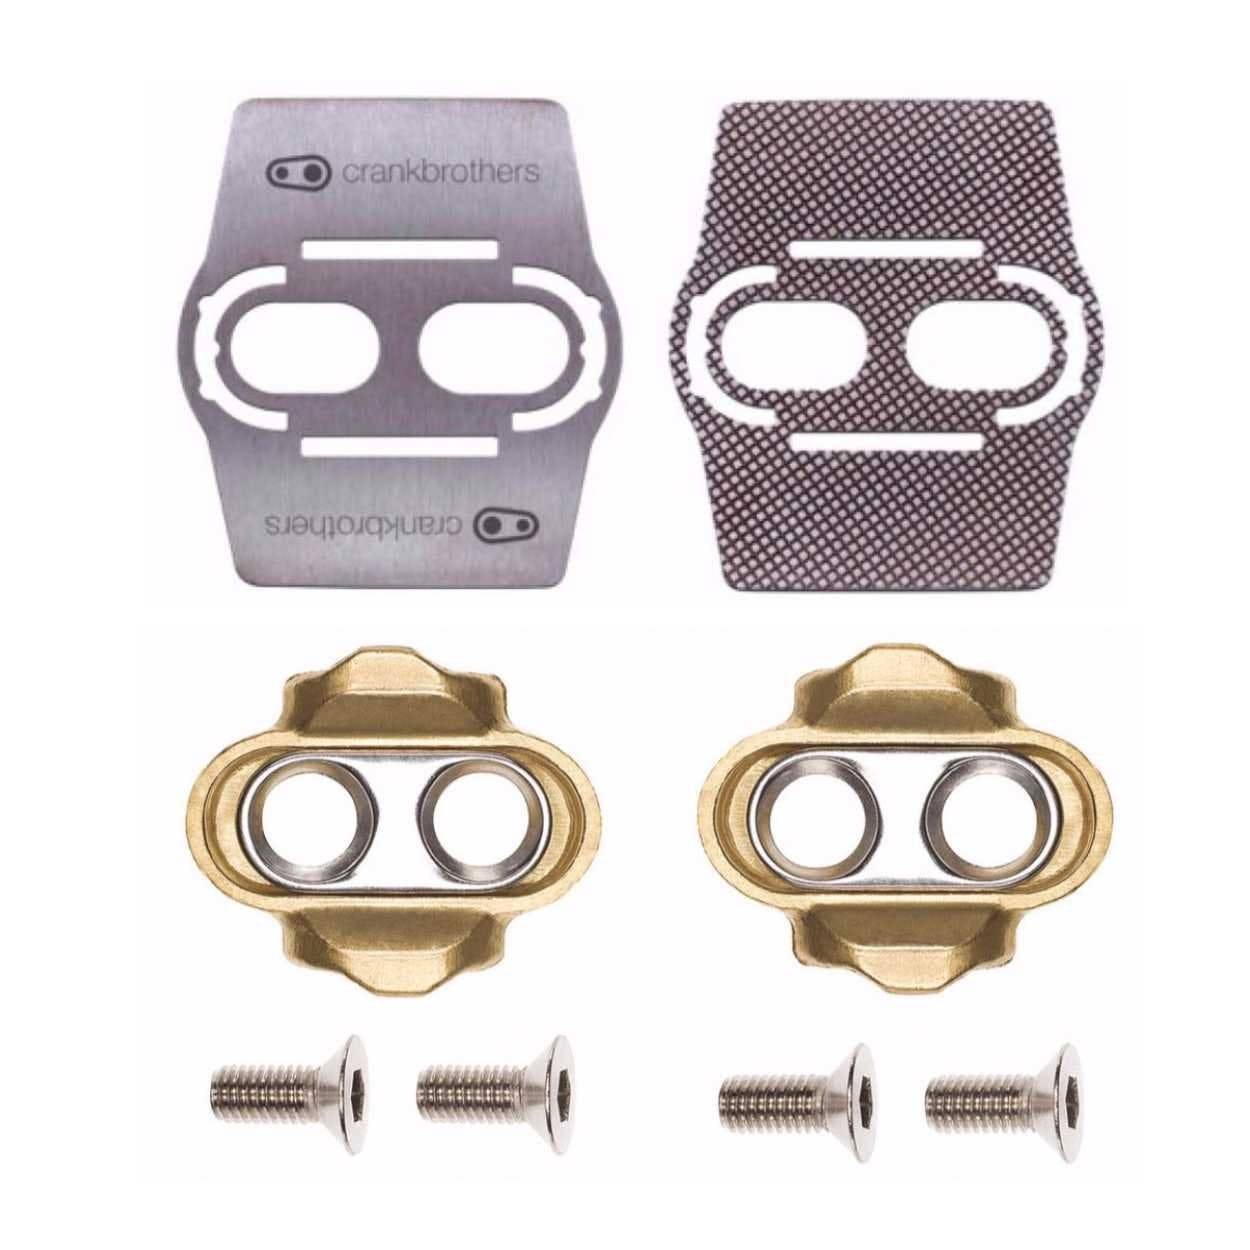 15e8710f8 CRANK BROTHERS Premium Cleats and Bike Shoe Shields MTB Pair  for Eggbeater